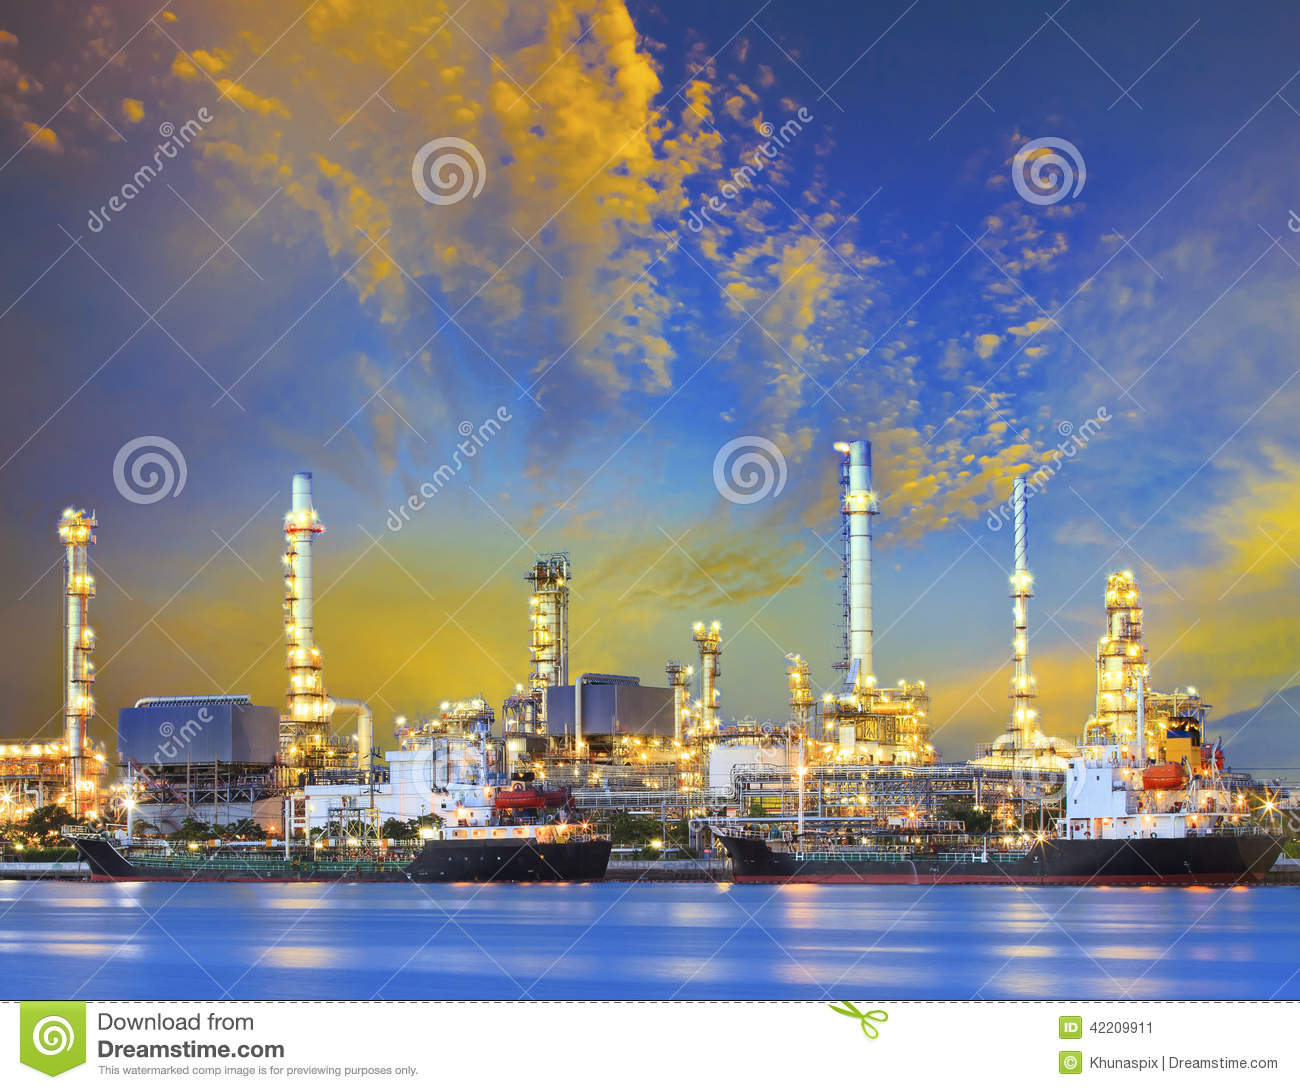 Industrial Light Fuel Oil: Tanker Ship And Petrochemical Oil Refinery Industry Plant